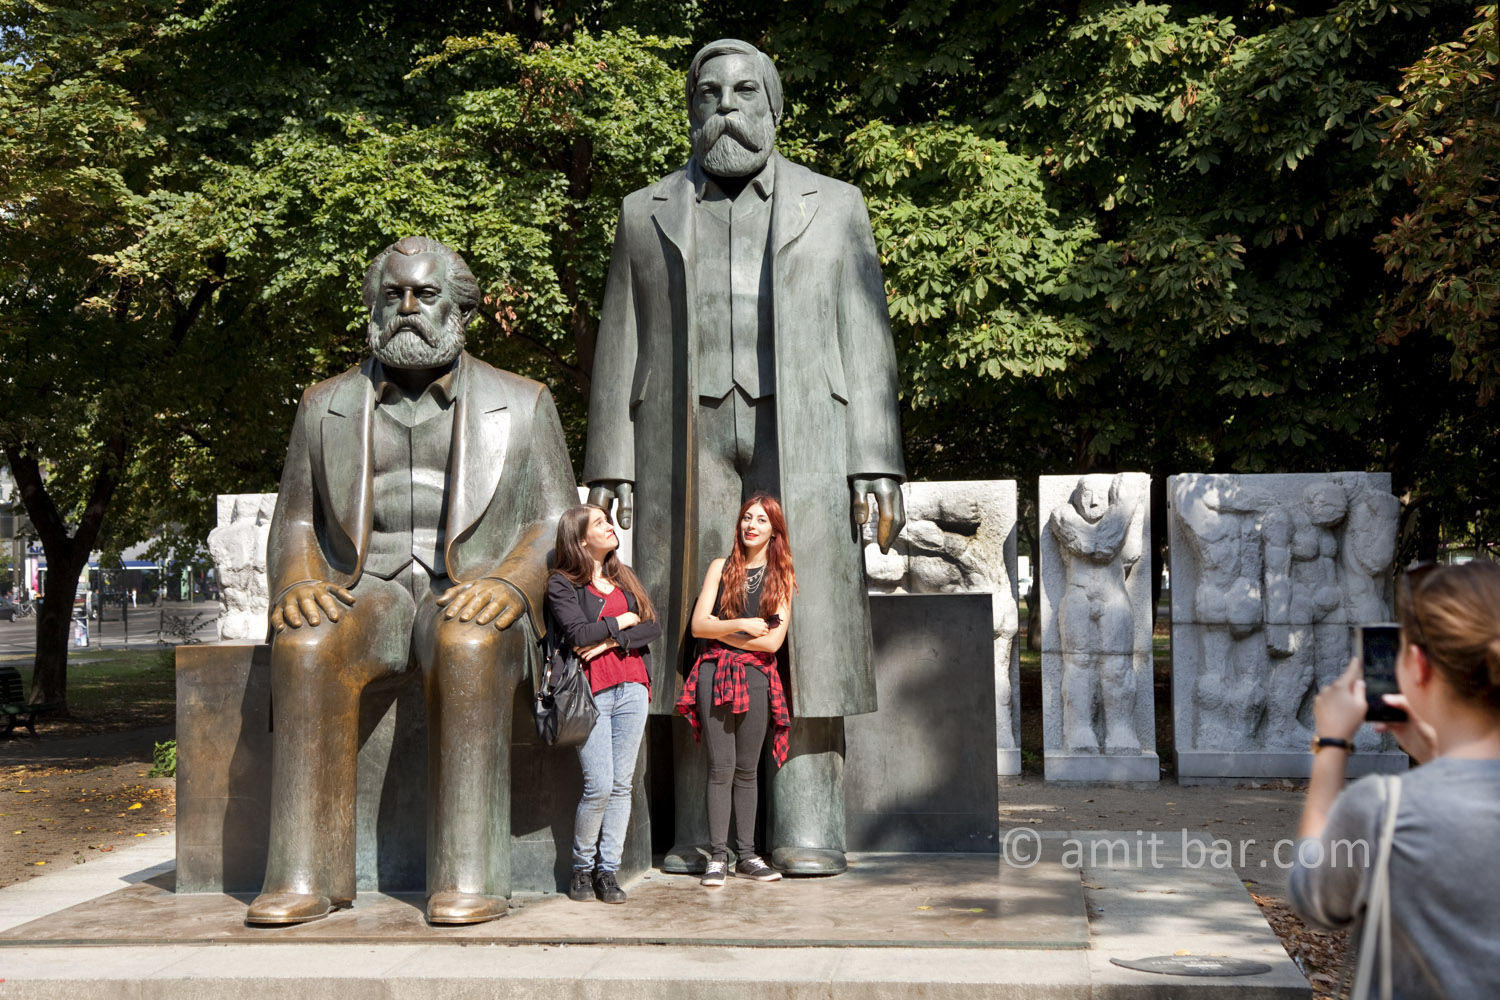 Berlin 2: The influence of Marx and Engels. Two girls beside the sculptures of Marx and Engels